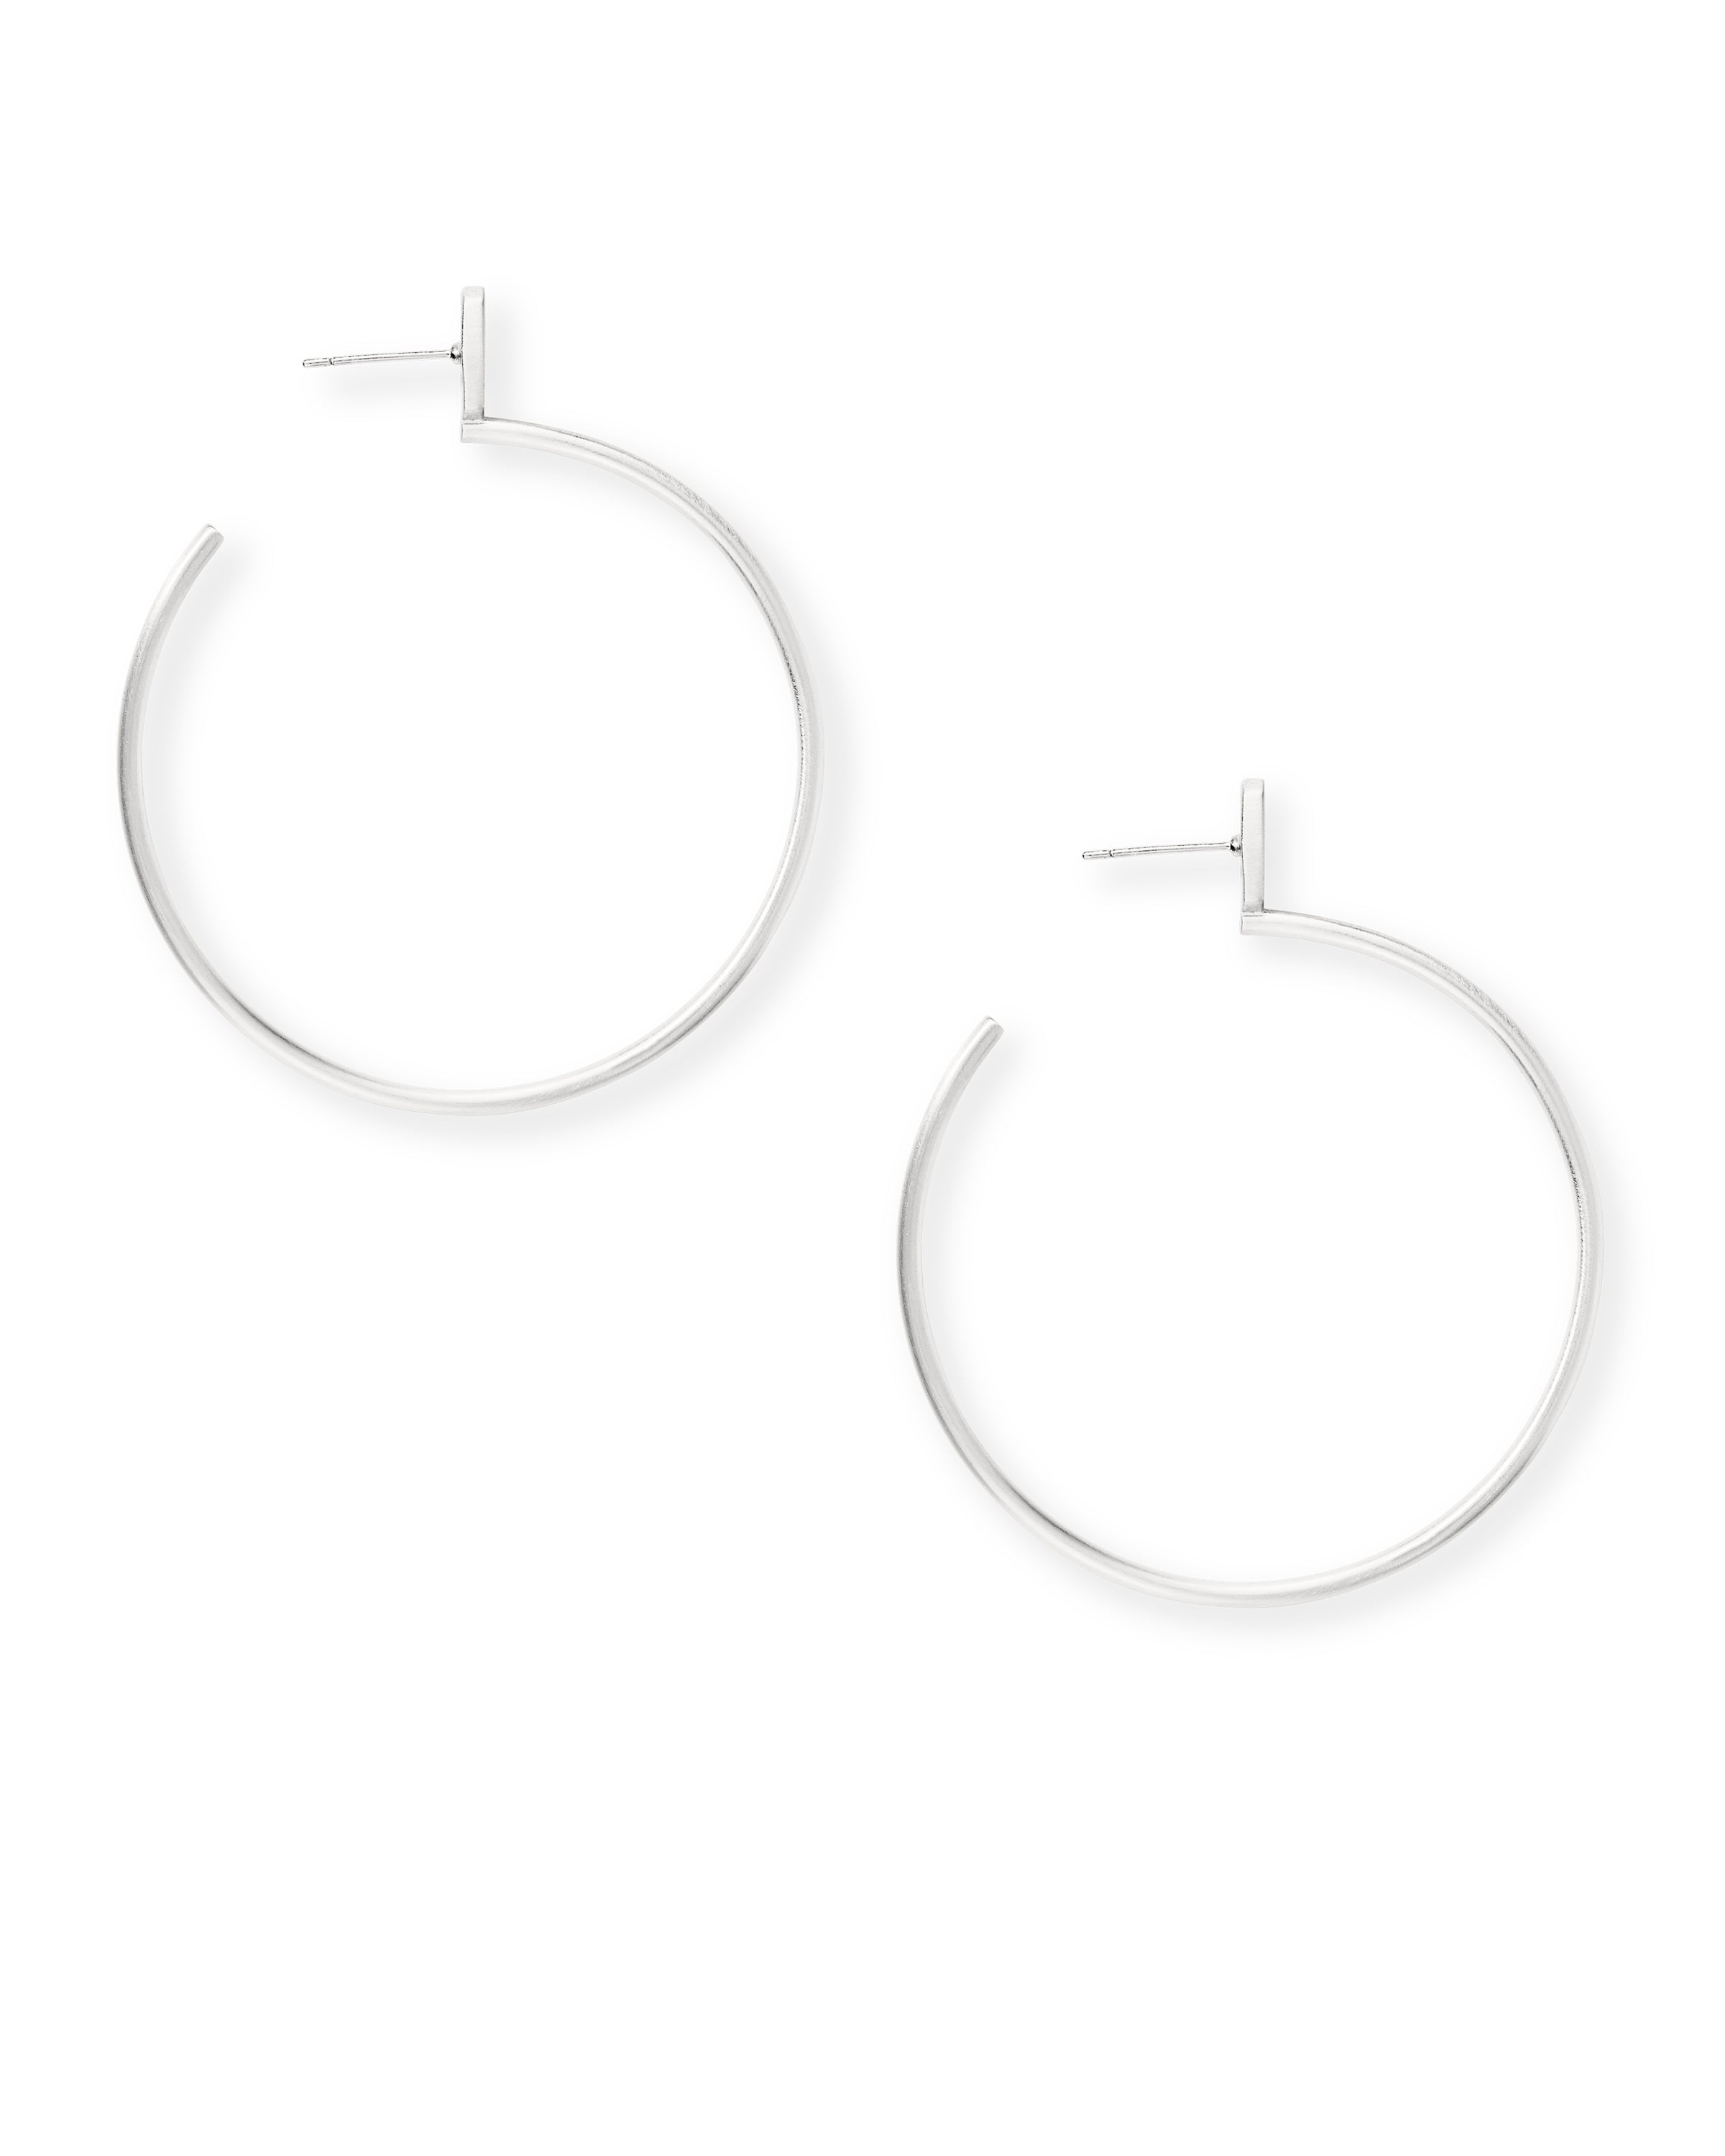 Kendra Scott Pepper Earrings in Bright Silver